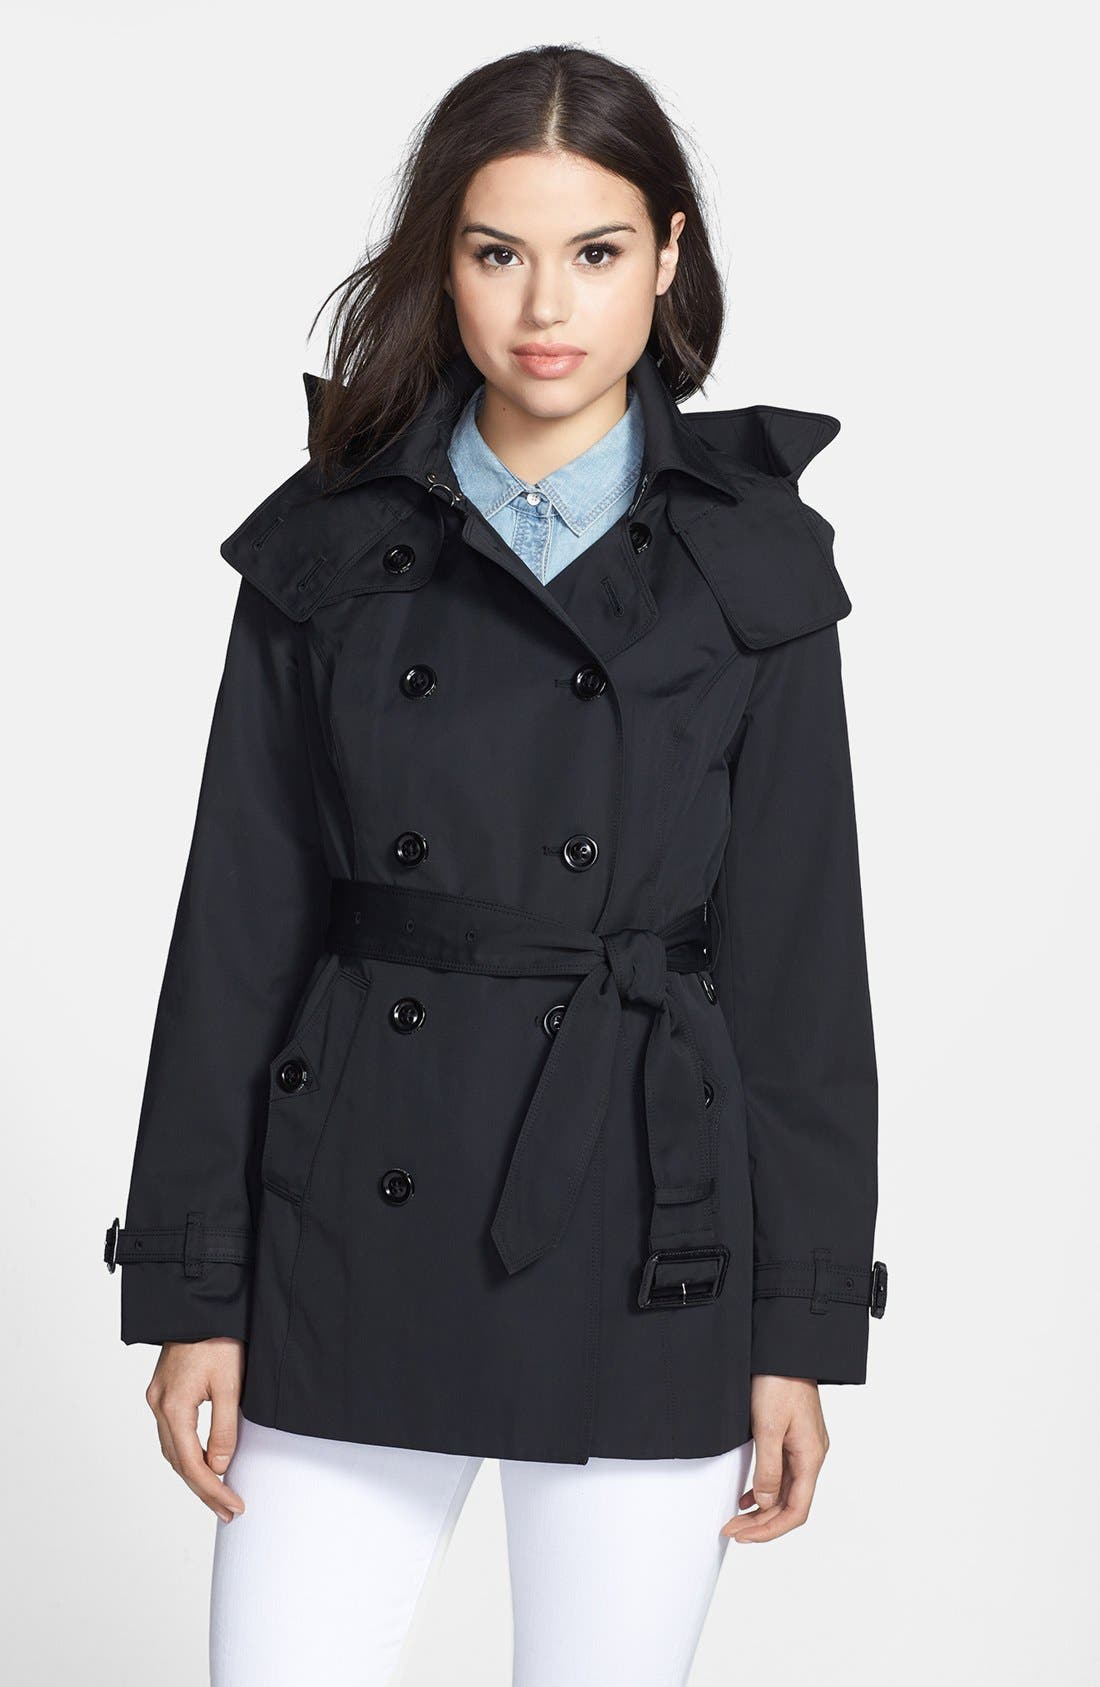 Heritage Trench Coat with Detachable Hood,                             Main thumbnail 1, color,                             001